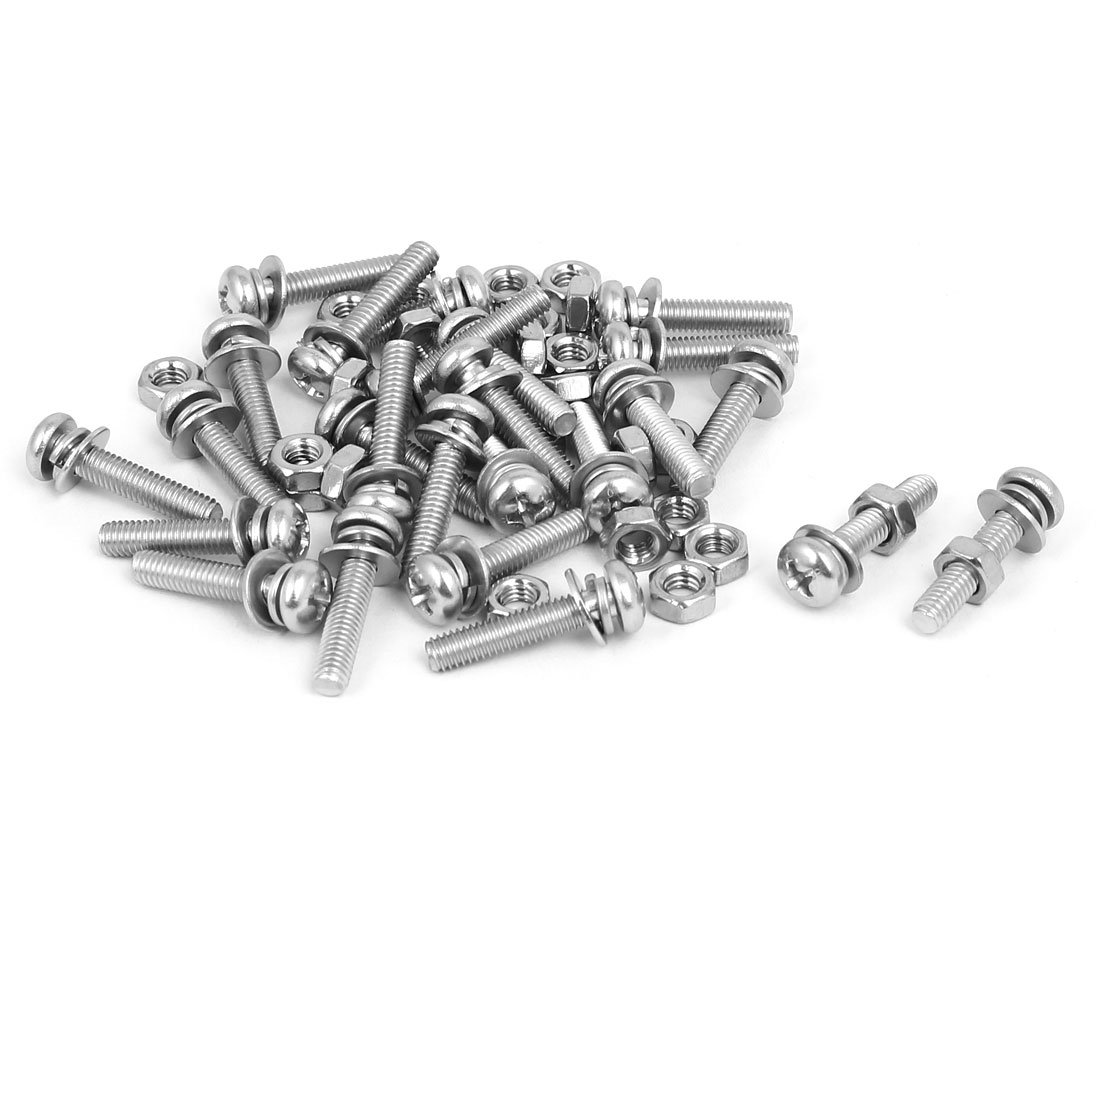 uxcell M4 x 20mm 304 Stainless Steel Phillips Pan Head Screws Nuts w Washers 25 Sets